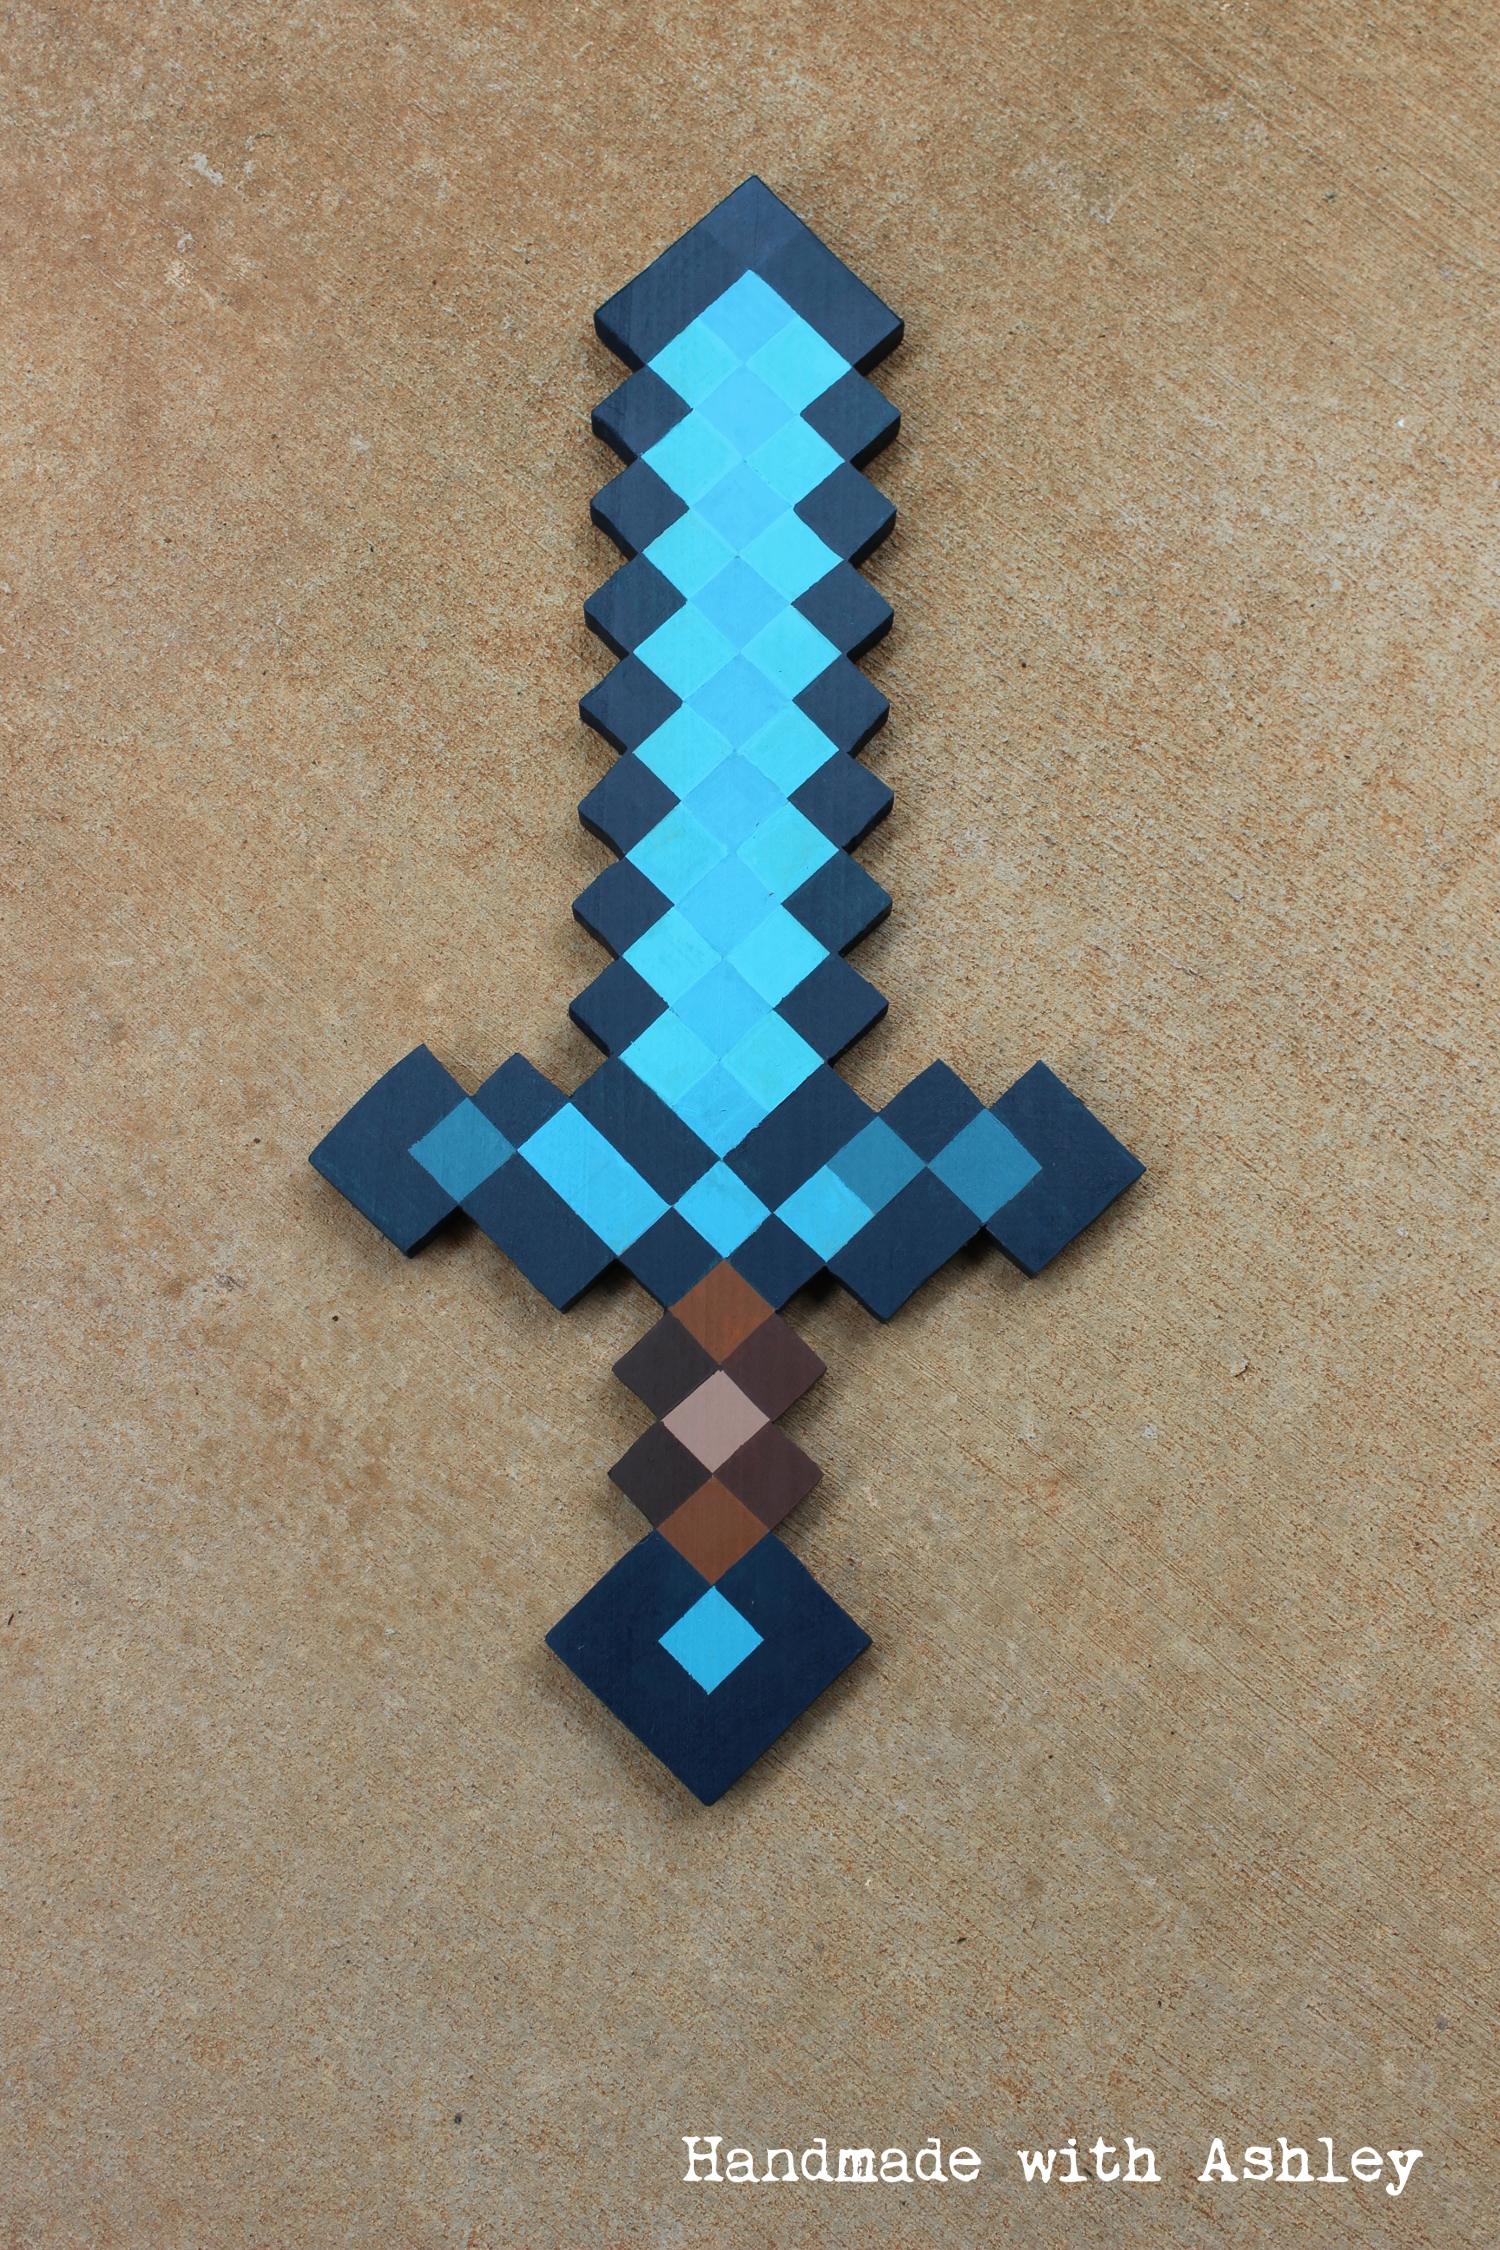 diy minecraft sword wooden sword tutorial handmade